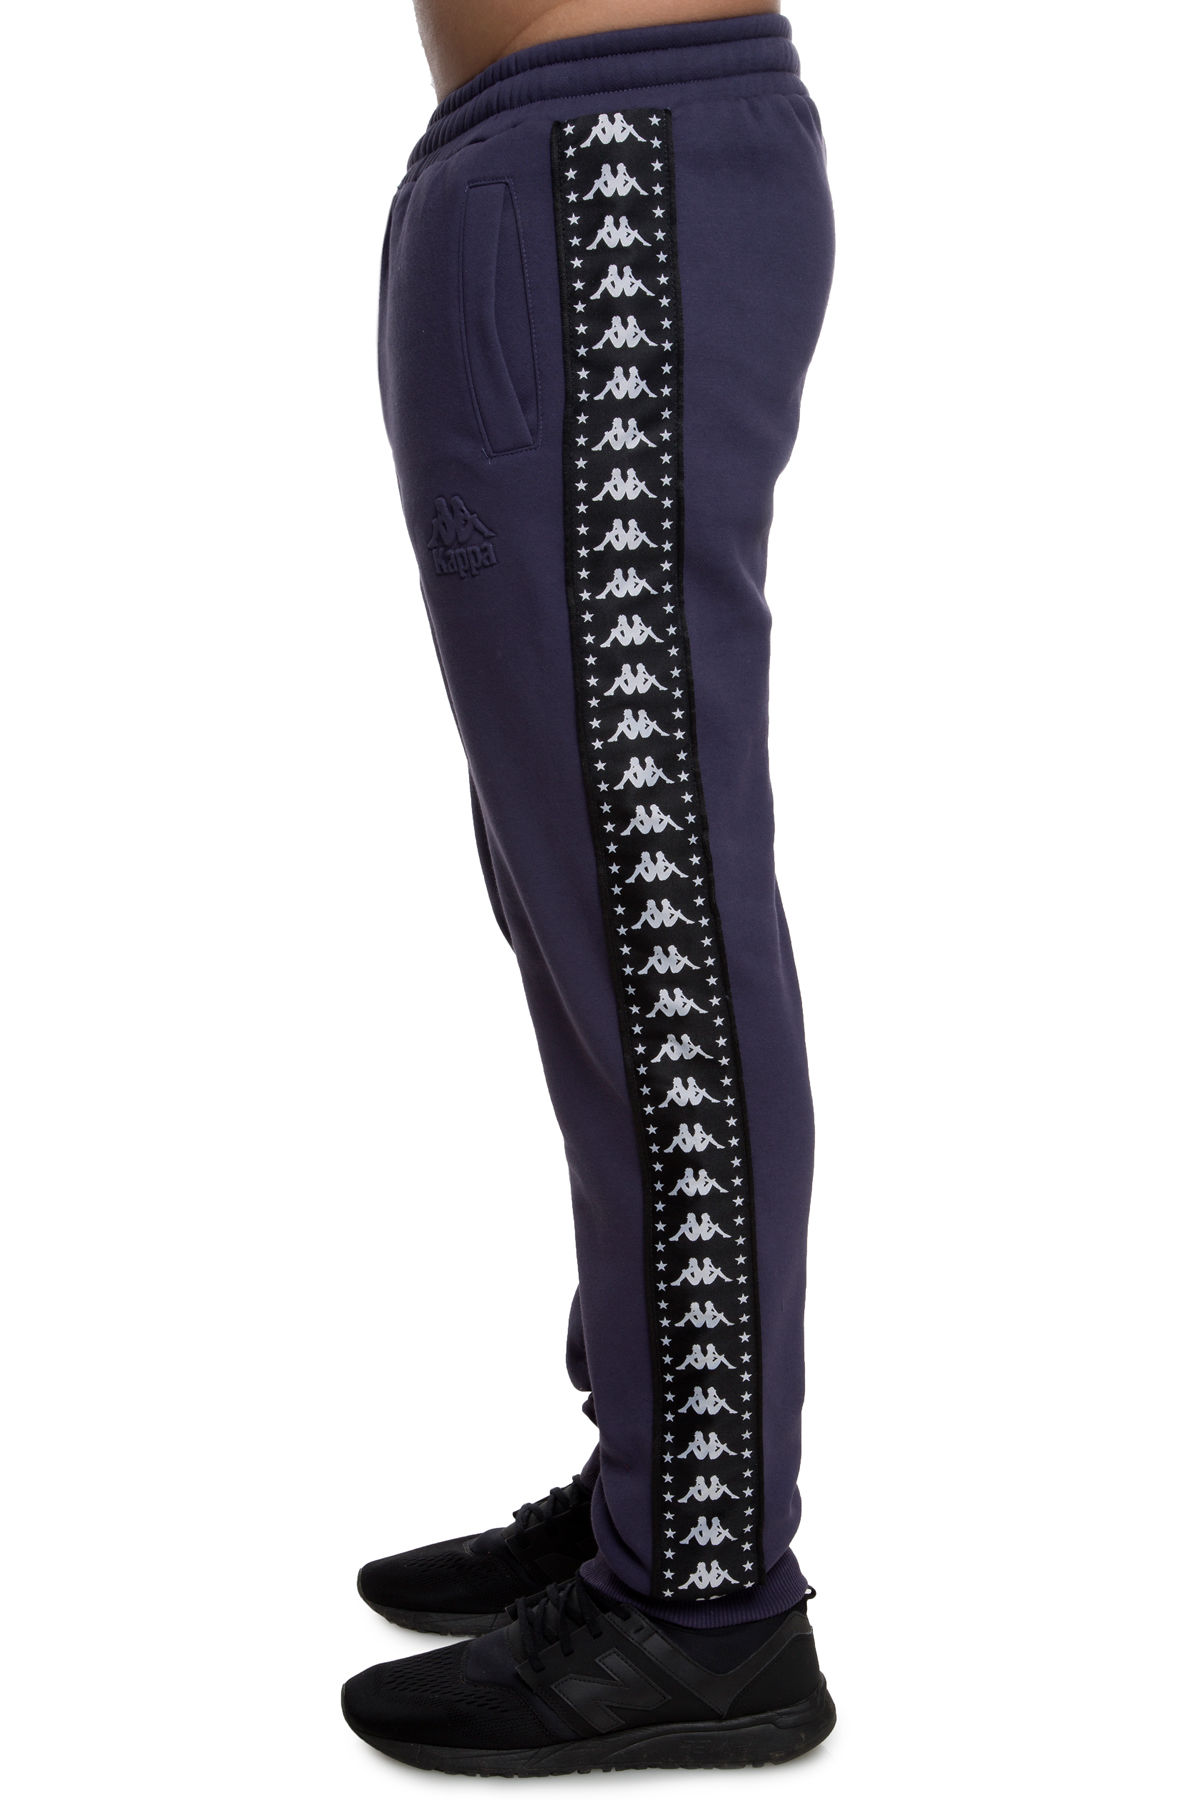 Image of The AUTHENTIC BZALIW FLEECE PANT in Greystone Blue and Black